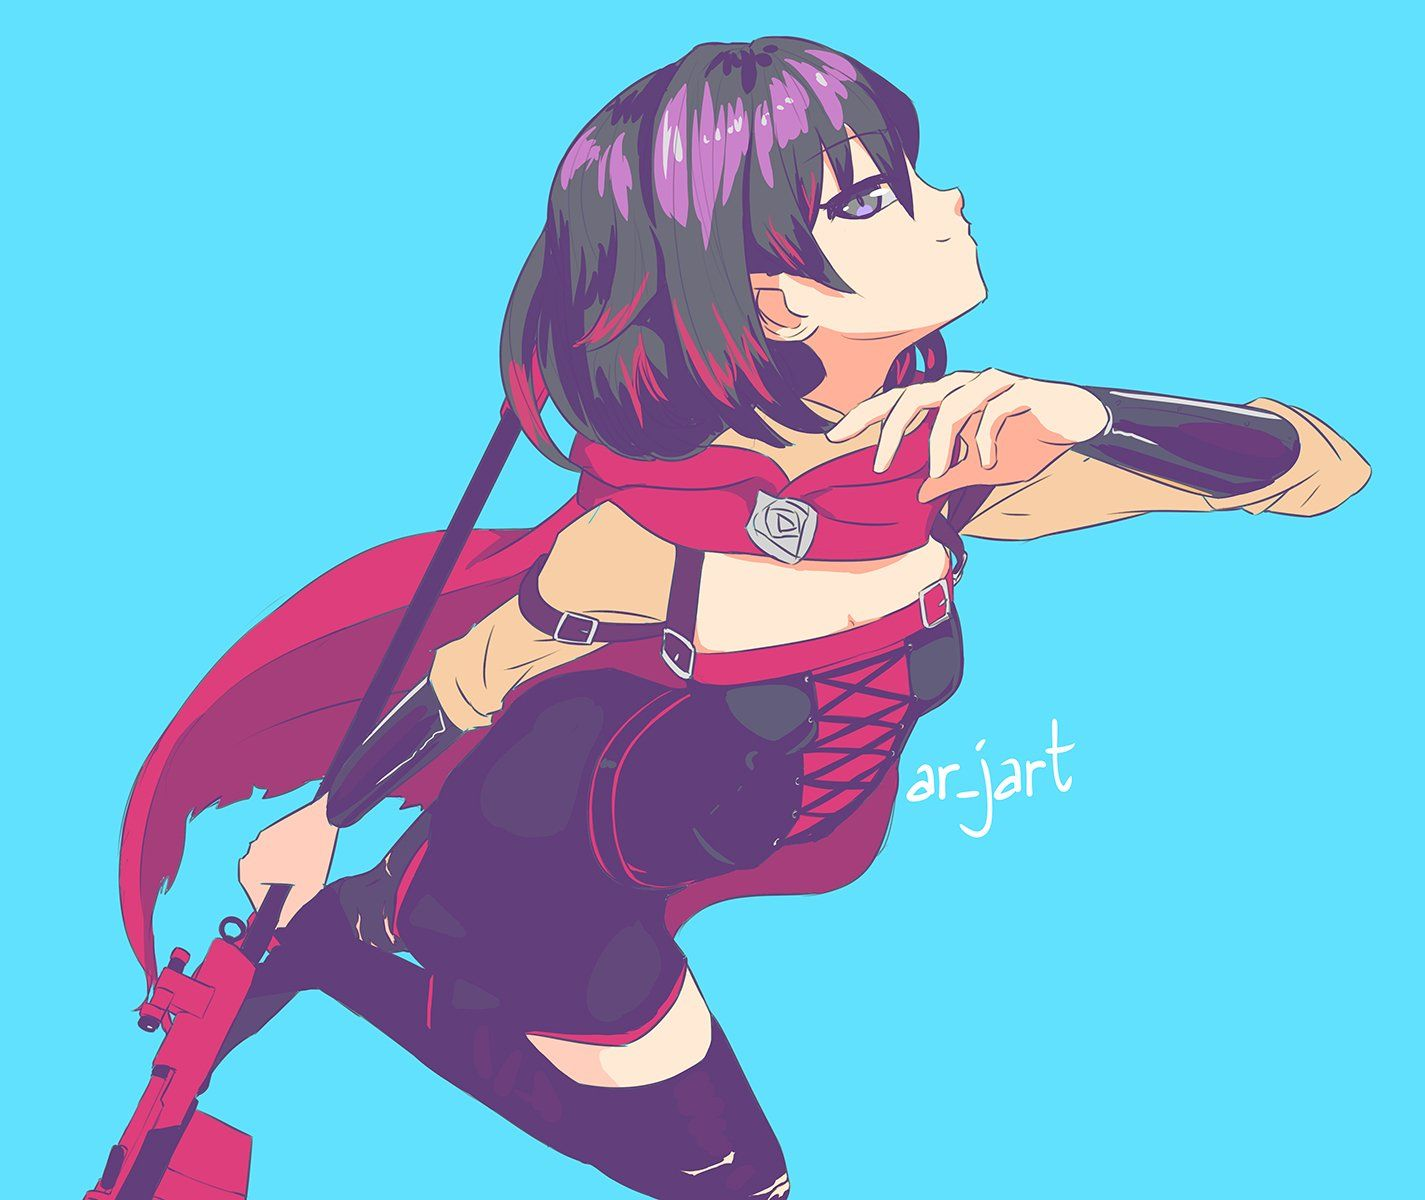 Arjart On With Images Dynamic Poses Character Art Rwby Anime